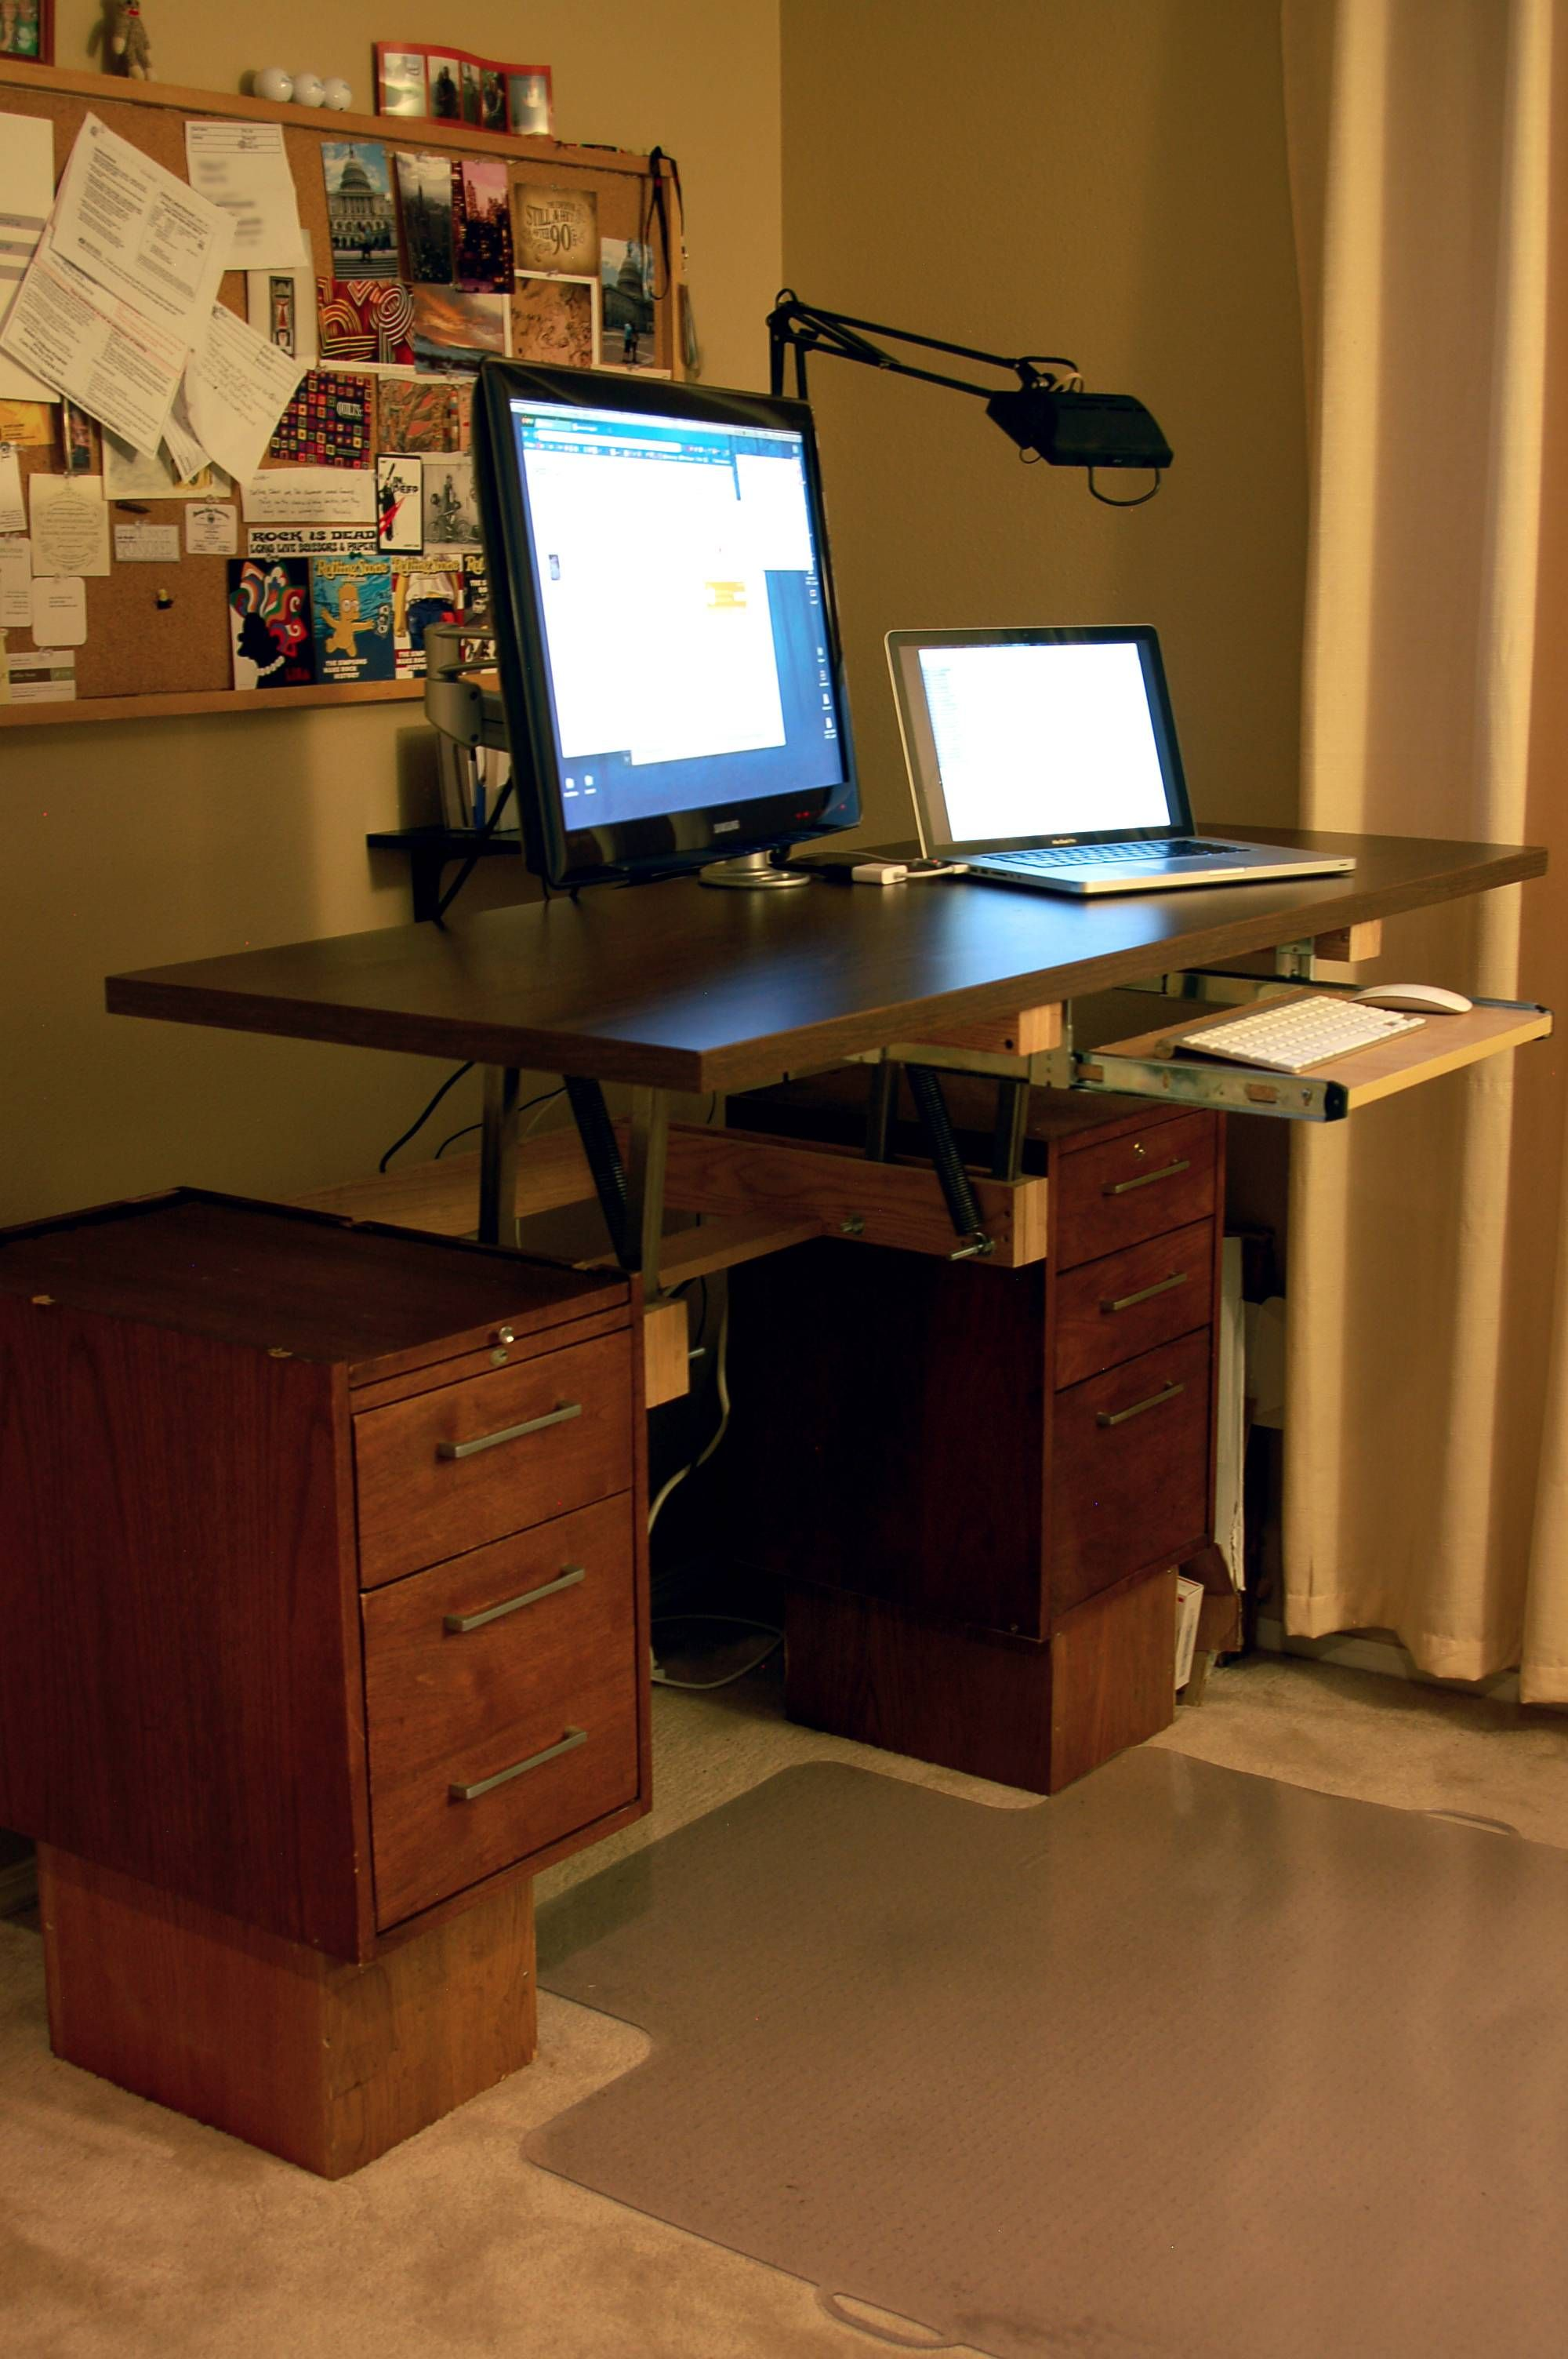 Ordinaire DIY Convertible Standing Desk   Imgur Love The Idea Of Adding 2 File  Cabinets For The Base.